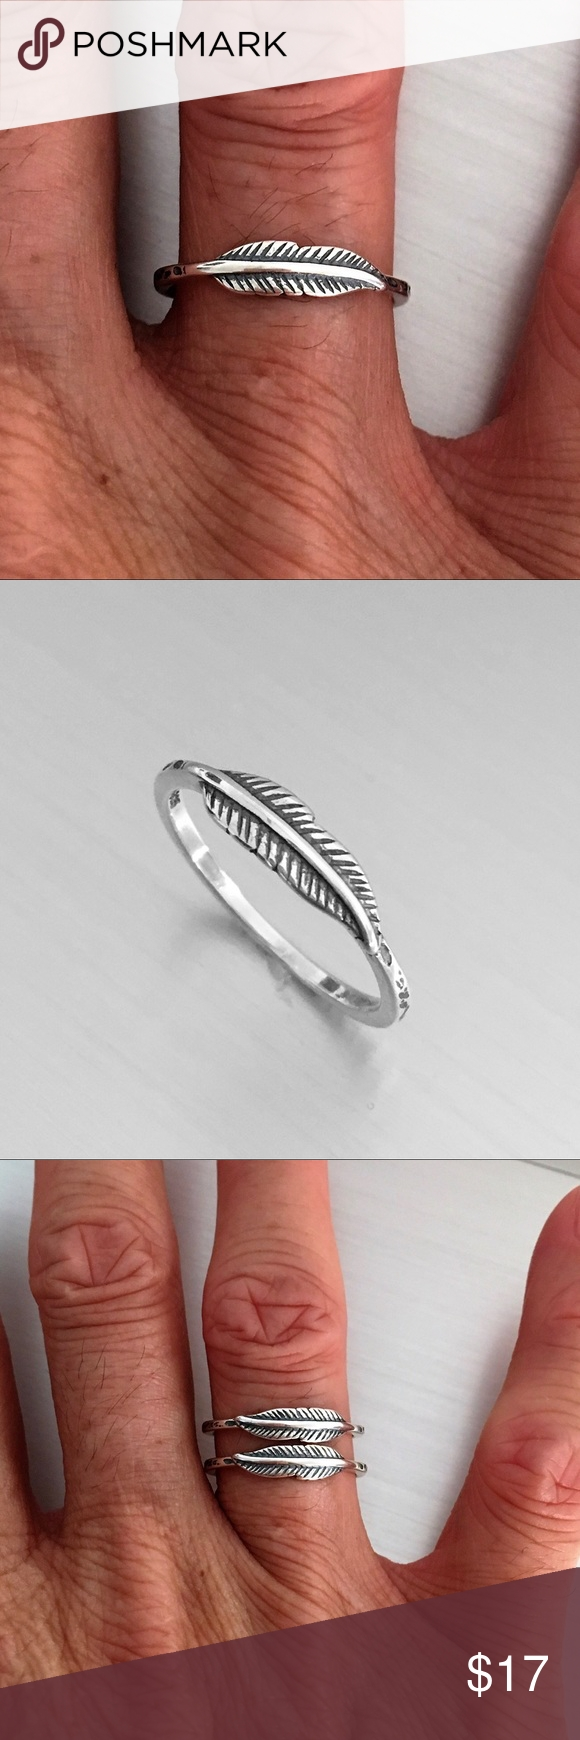 Sterling Silver Tiny Feather Ring | Feather Ring, Toe Rings And Pertaining To Most Up To Date Feather Toe Rings (Gallery 5 of 15)